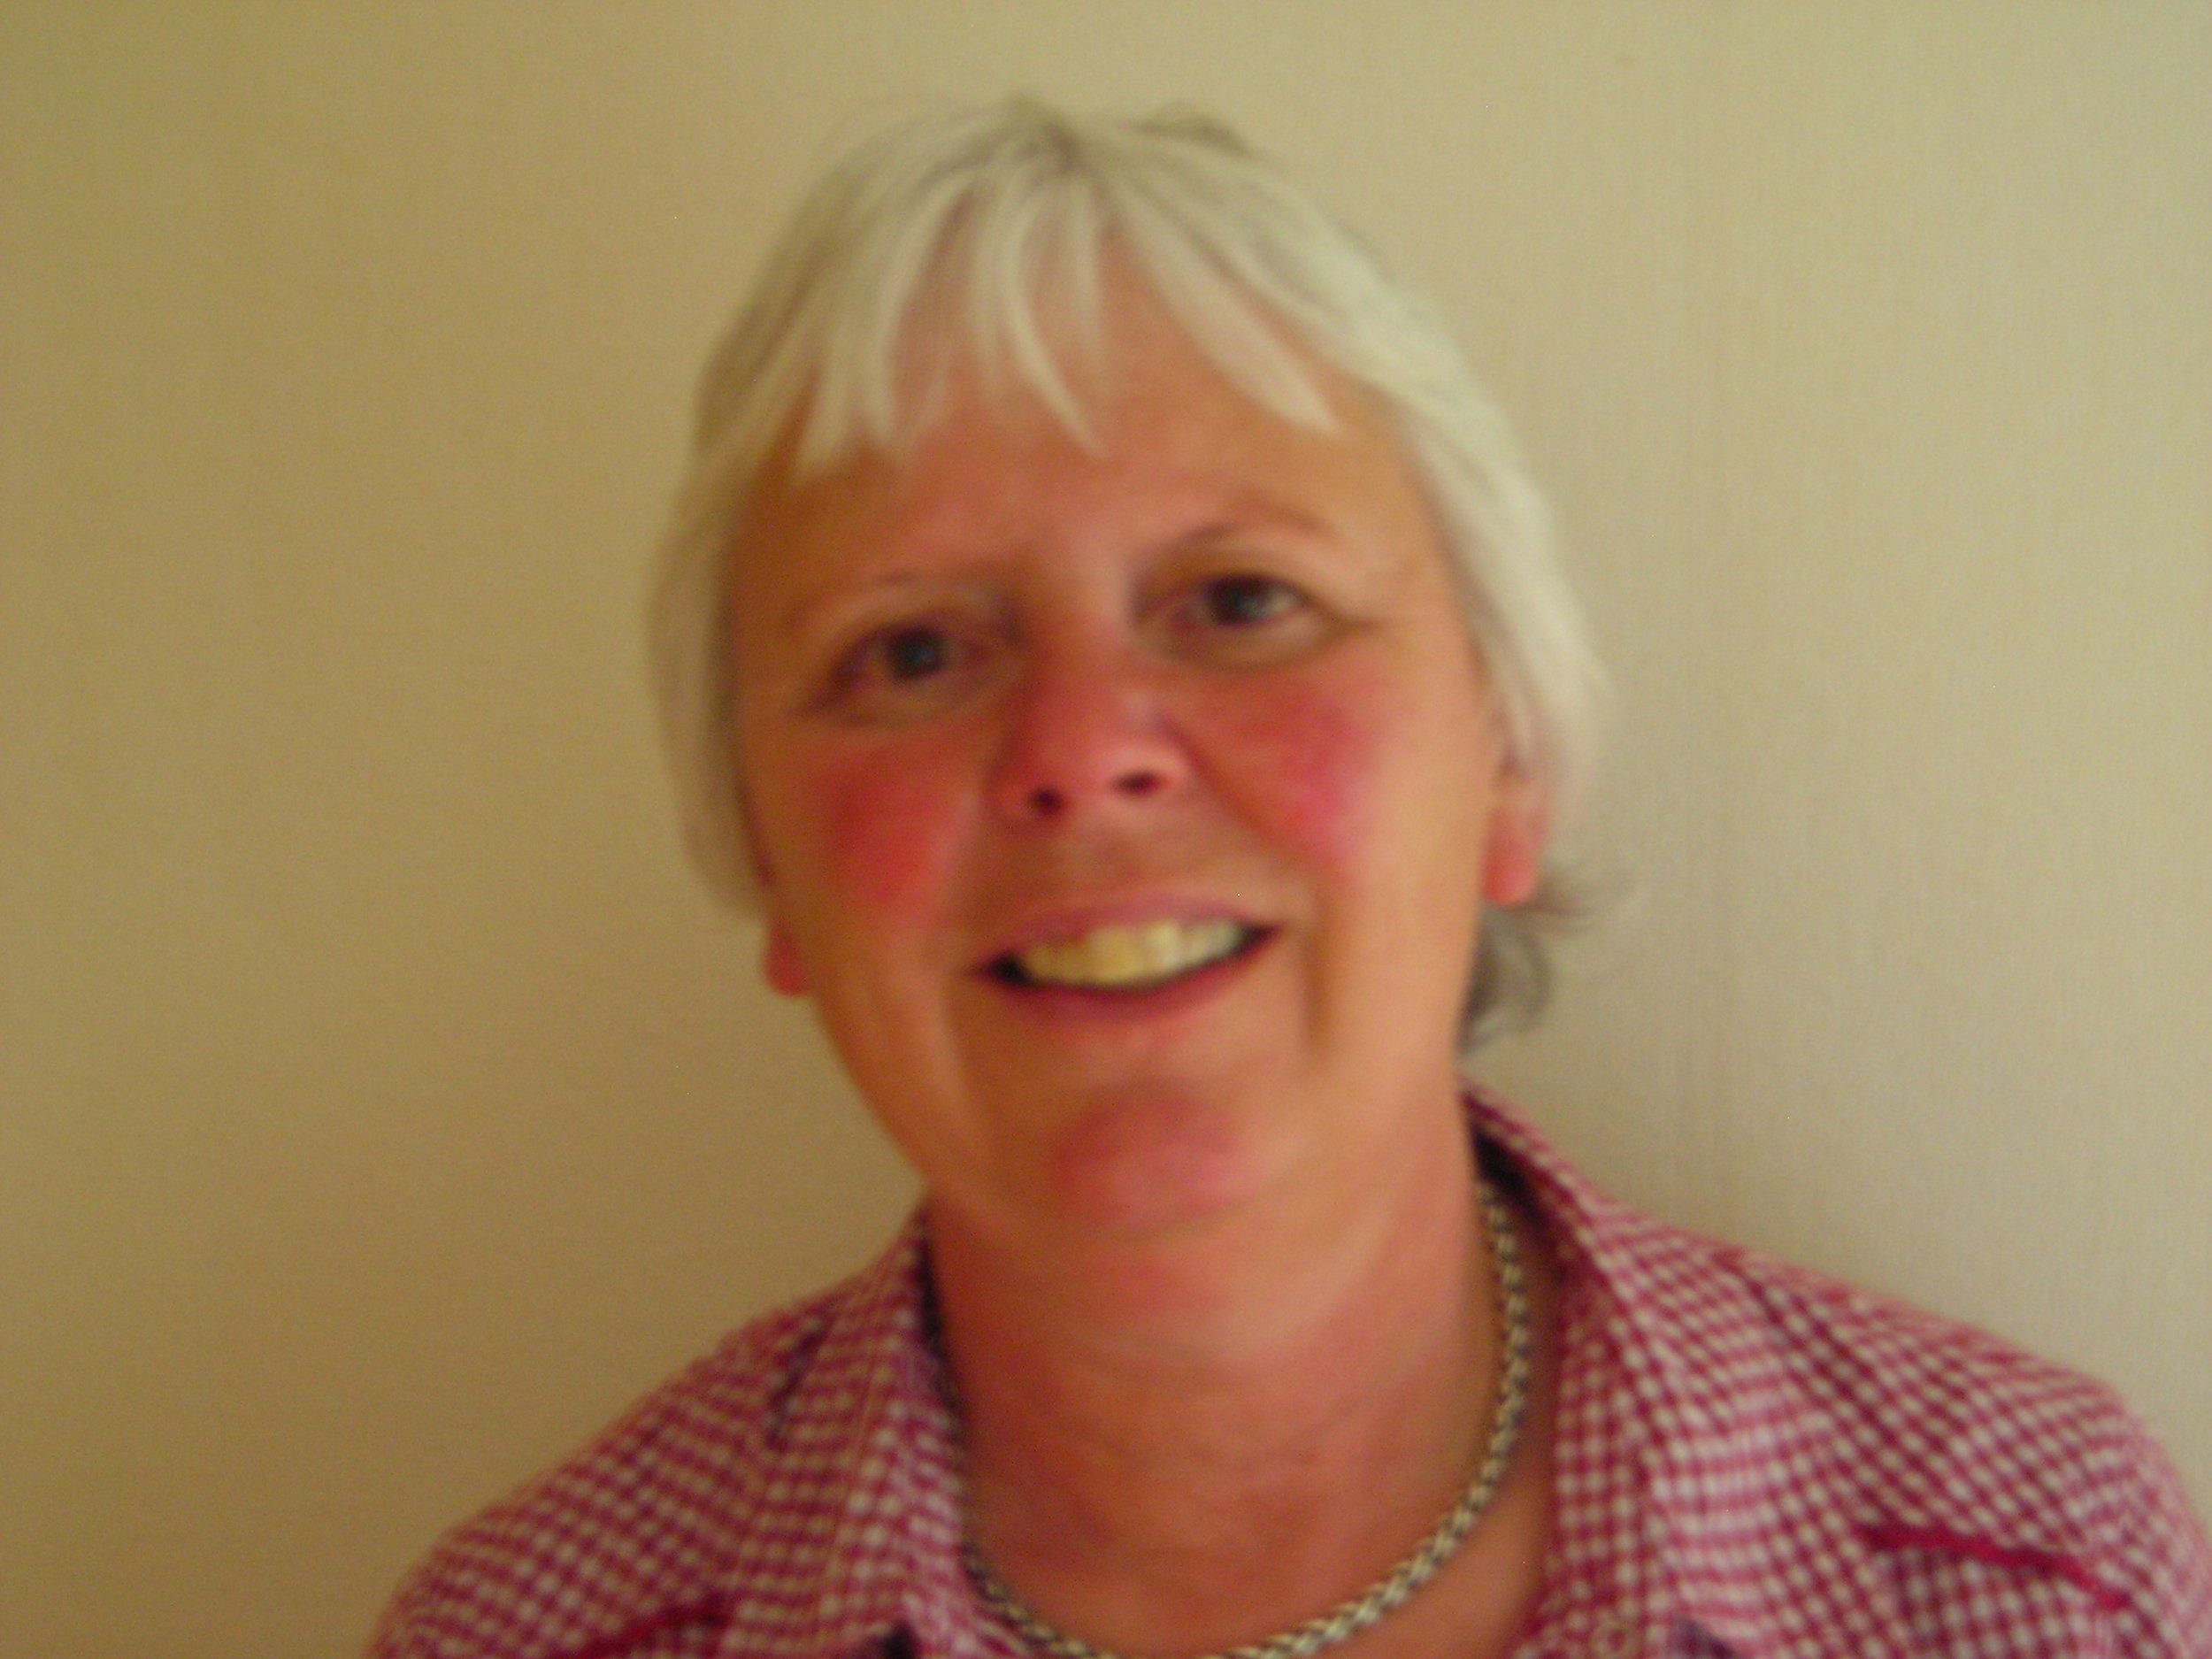 Dr Mandy Forbes - Consultant Clinical Psychologist - Mandy is a Consultant Clinical Psychologist.She undertook her Clinical Psychology training at the University of Edinburgh. She has a number of years' experience working in Adult Mental Health and with adults experiencing psychological difficulties related to their physical health. Mandy has worked in both the NHS and Private sector for a number of years and is a former Clinical Lead of Clinical Health Psychology, NHS Tayside.Mandy is trained in a number of Psychological therapies, including Cognitive Behavioural Therapy (CBT), Mindfulness Based CBT and EMDR.In addition to offering General Clinical Psychology Assessments and Treatment, Mandy has a special interest and experience in Mental Health and Psychological Problems related to Sports Performance. Mandy has worked with a number of Professional and elite athletes.You can find out more about Mandy at www.sportsmindscotland.comTo book an appointment with Dr Forbes please call 01382 549088 or contact us.